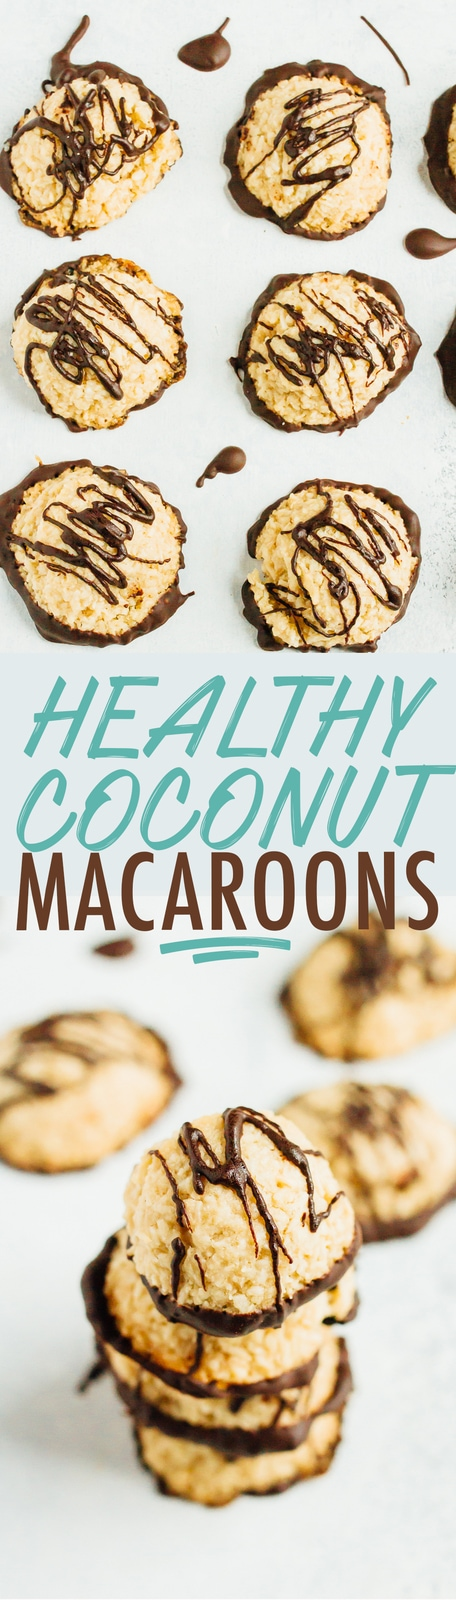 These Detox Macaroons are loaded with coconut flavor and sweetened only with pure maple syrup. They're perfect for when you're craving something sweet, but want to stick with your healthy eating goals! Paleo-friendly, gluten-free and vegan.